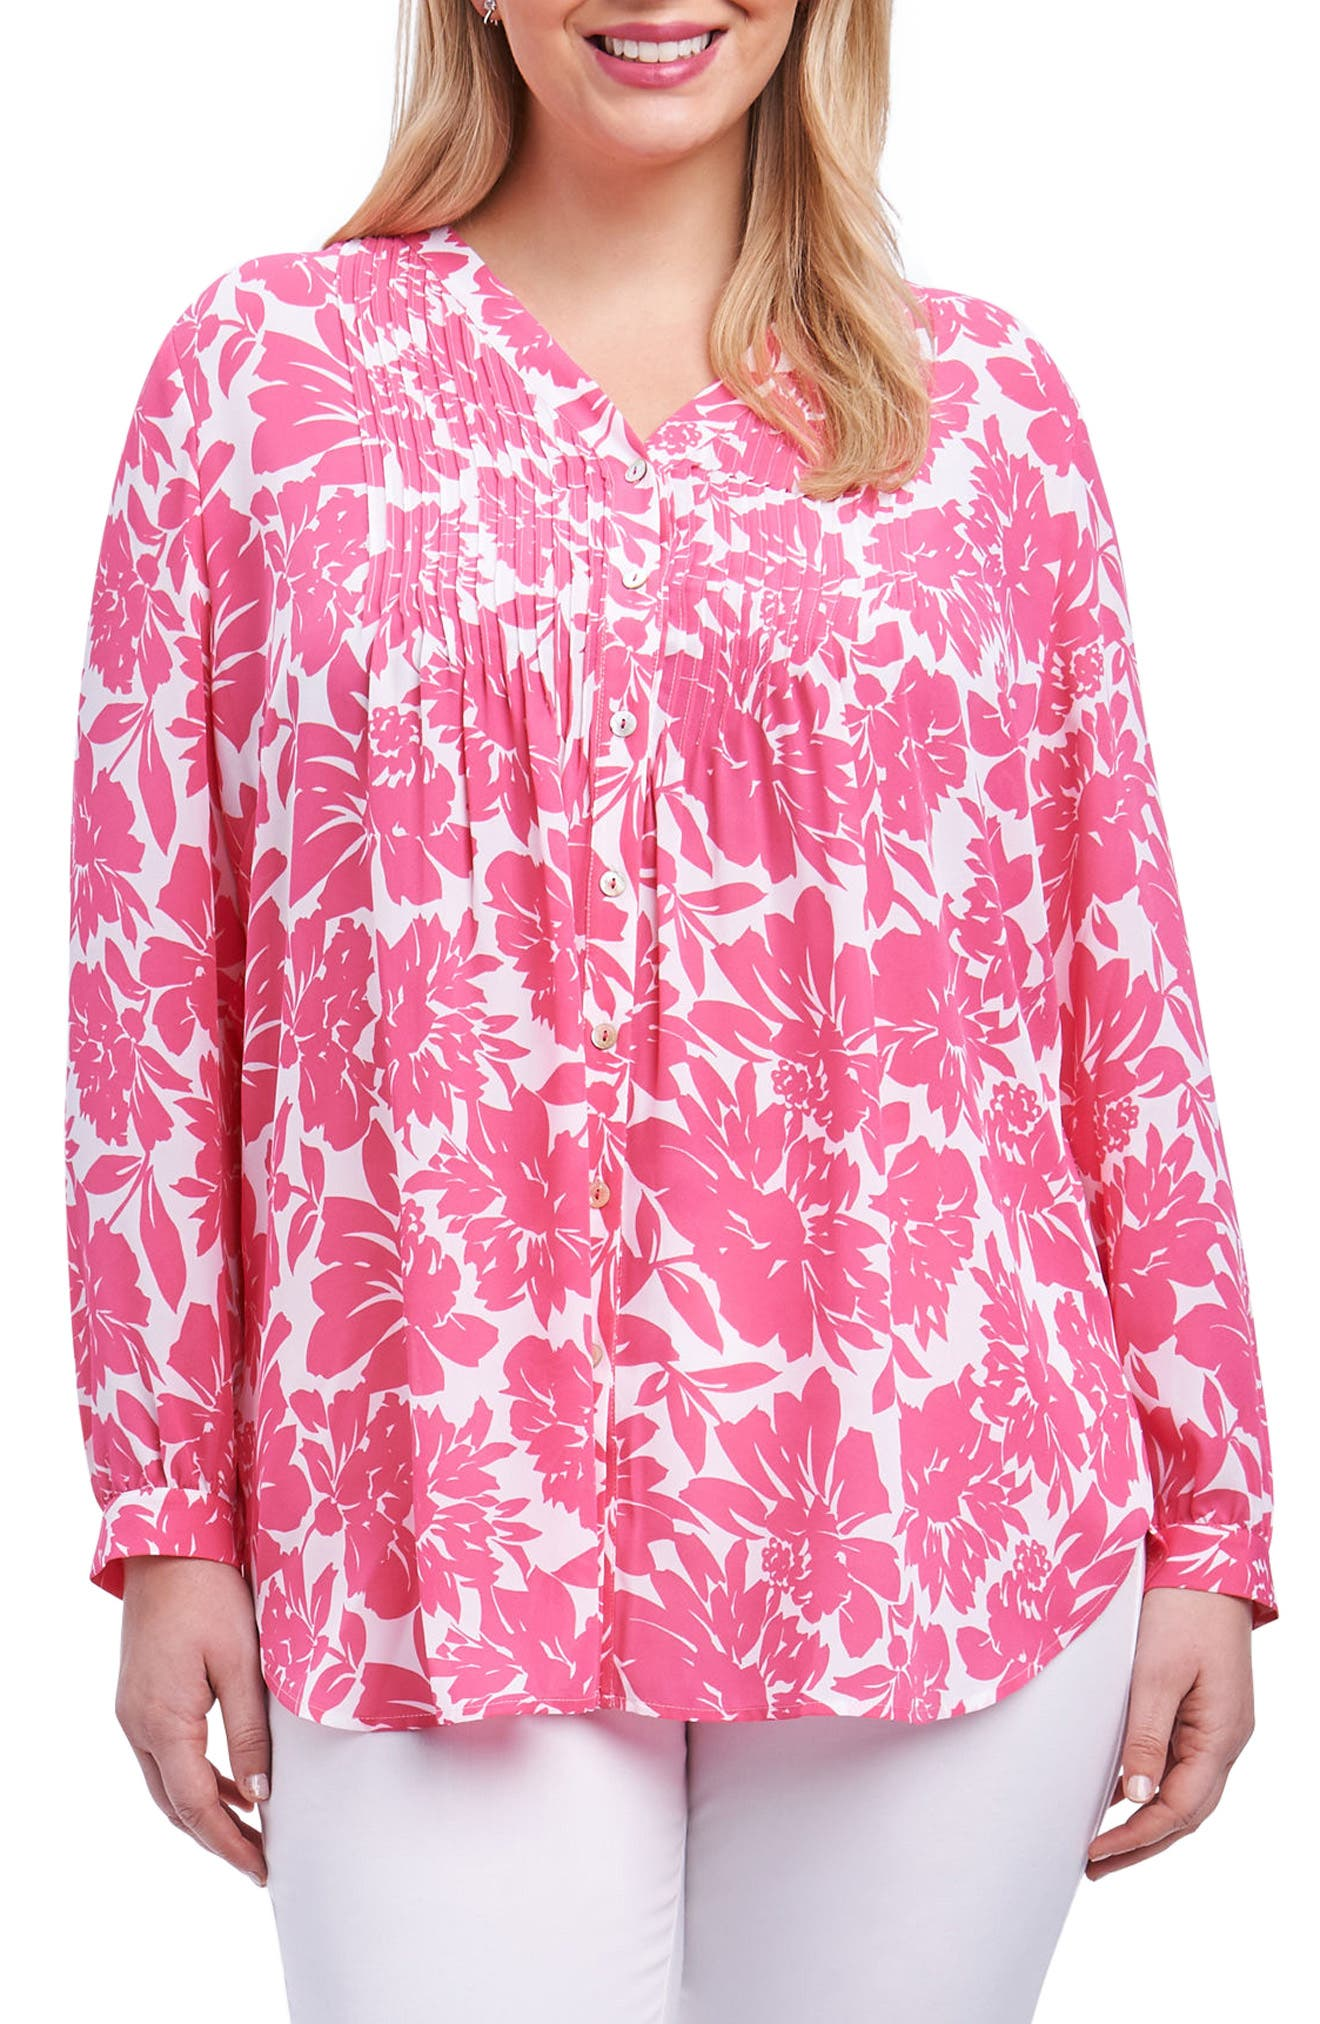 Mindy Sweet Rose Top,                         Main,                         color, 650